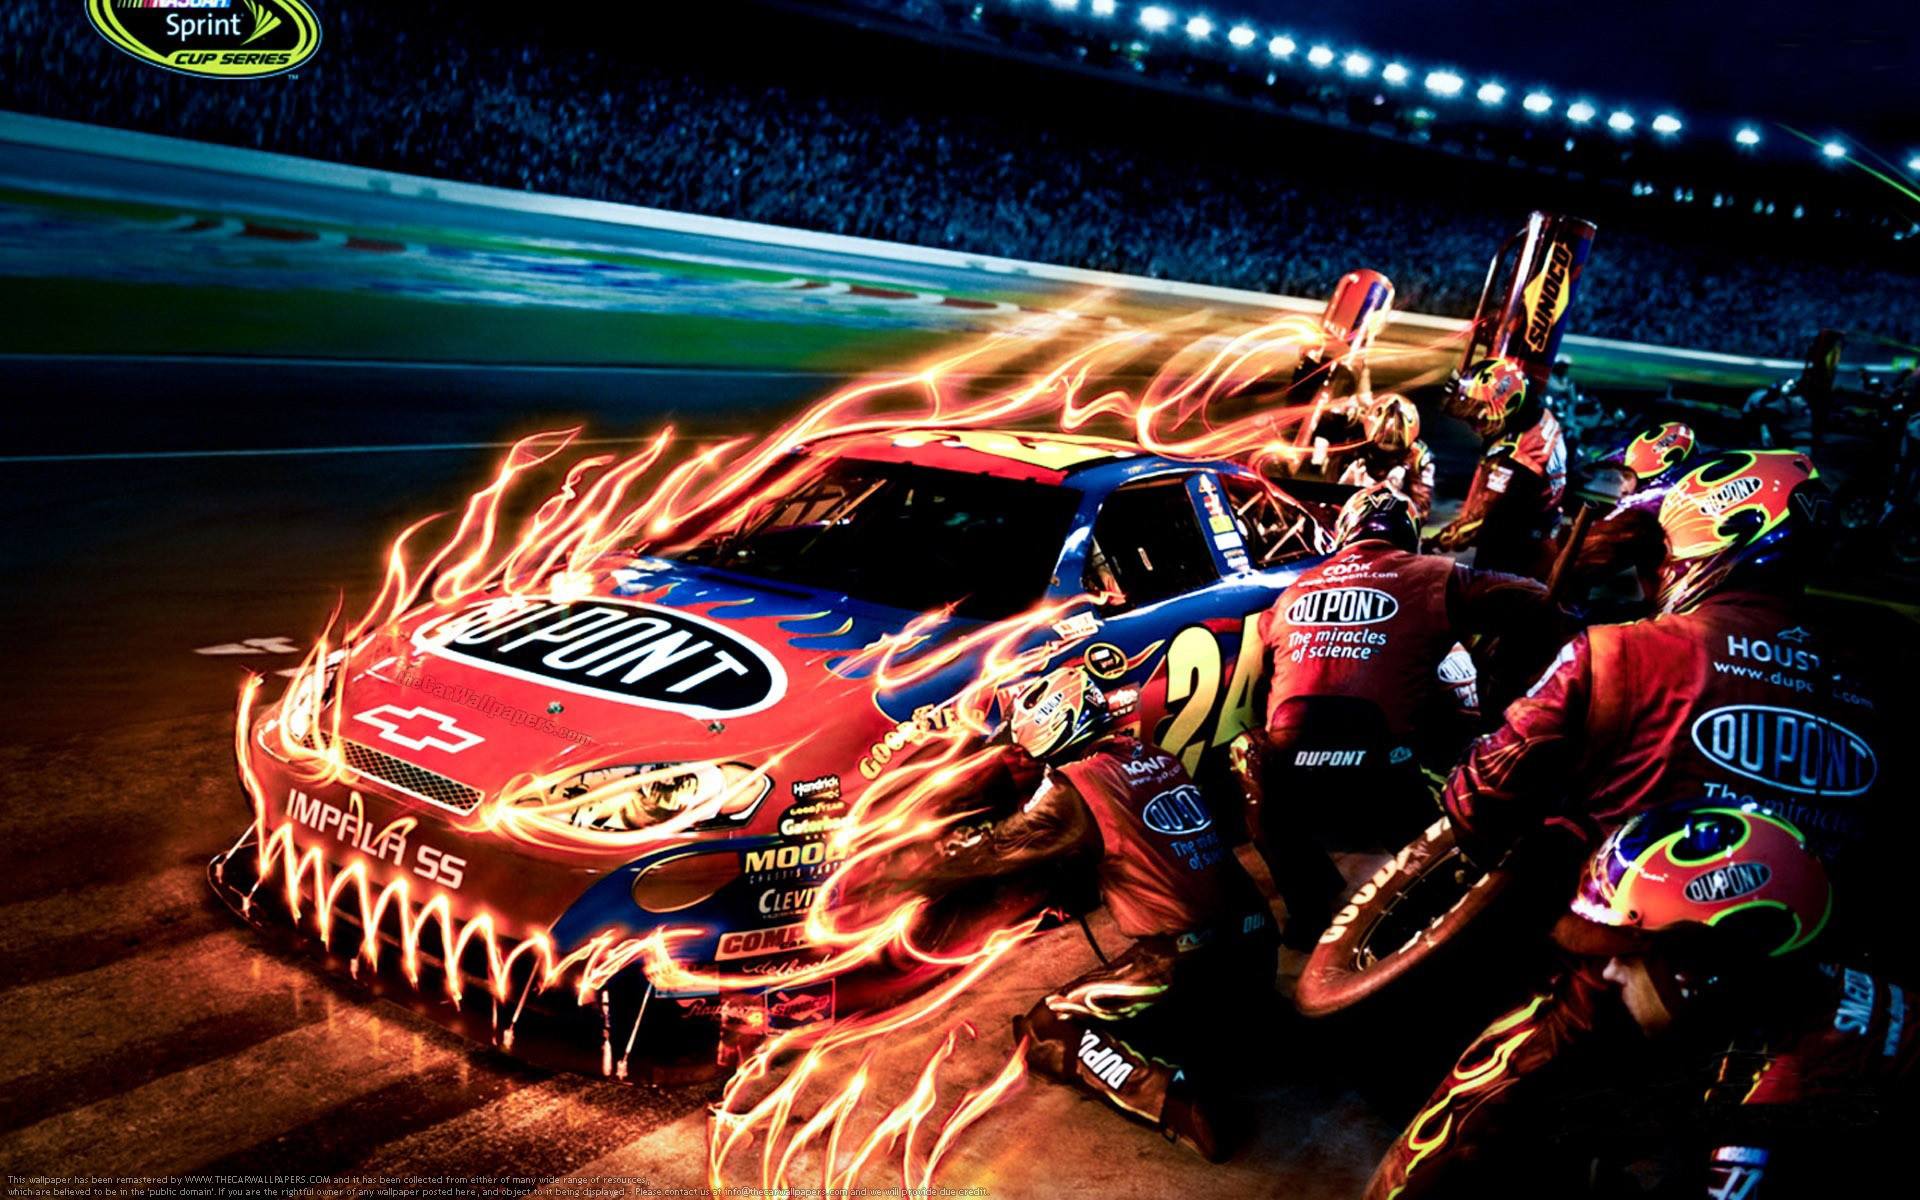 Jeff Gordon Wallpaper Screensaver (59+ Images